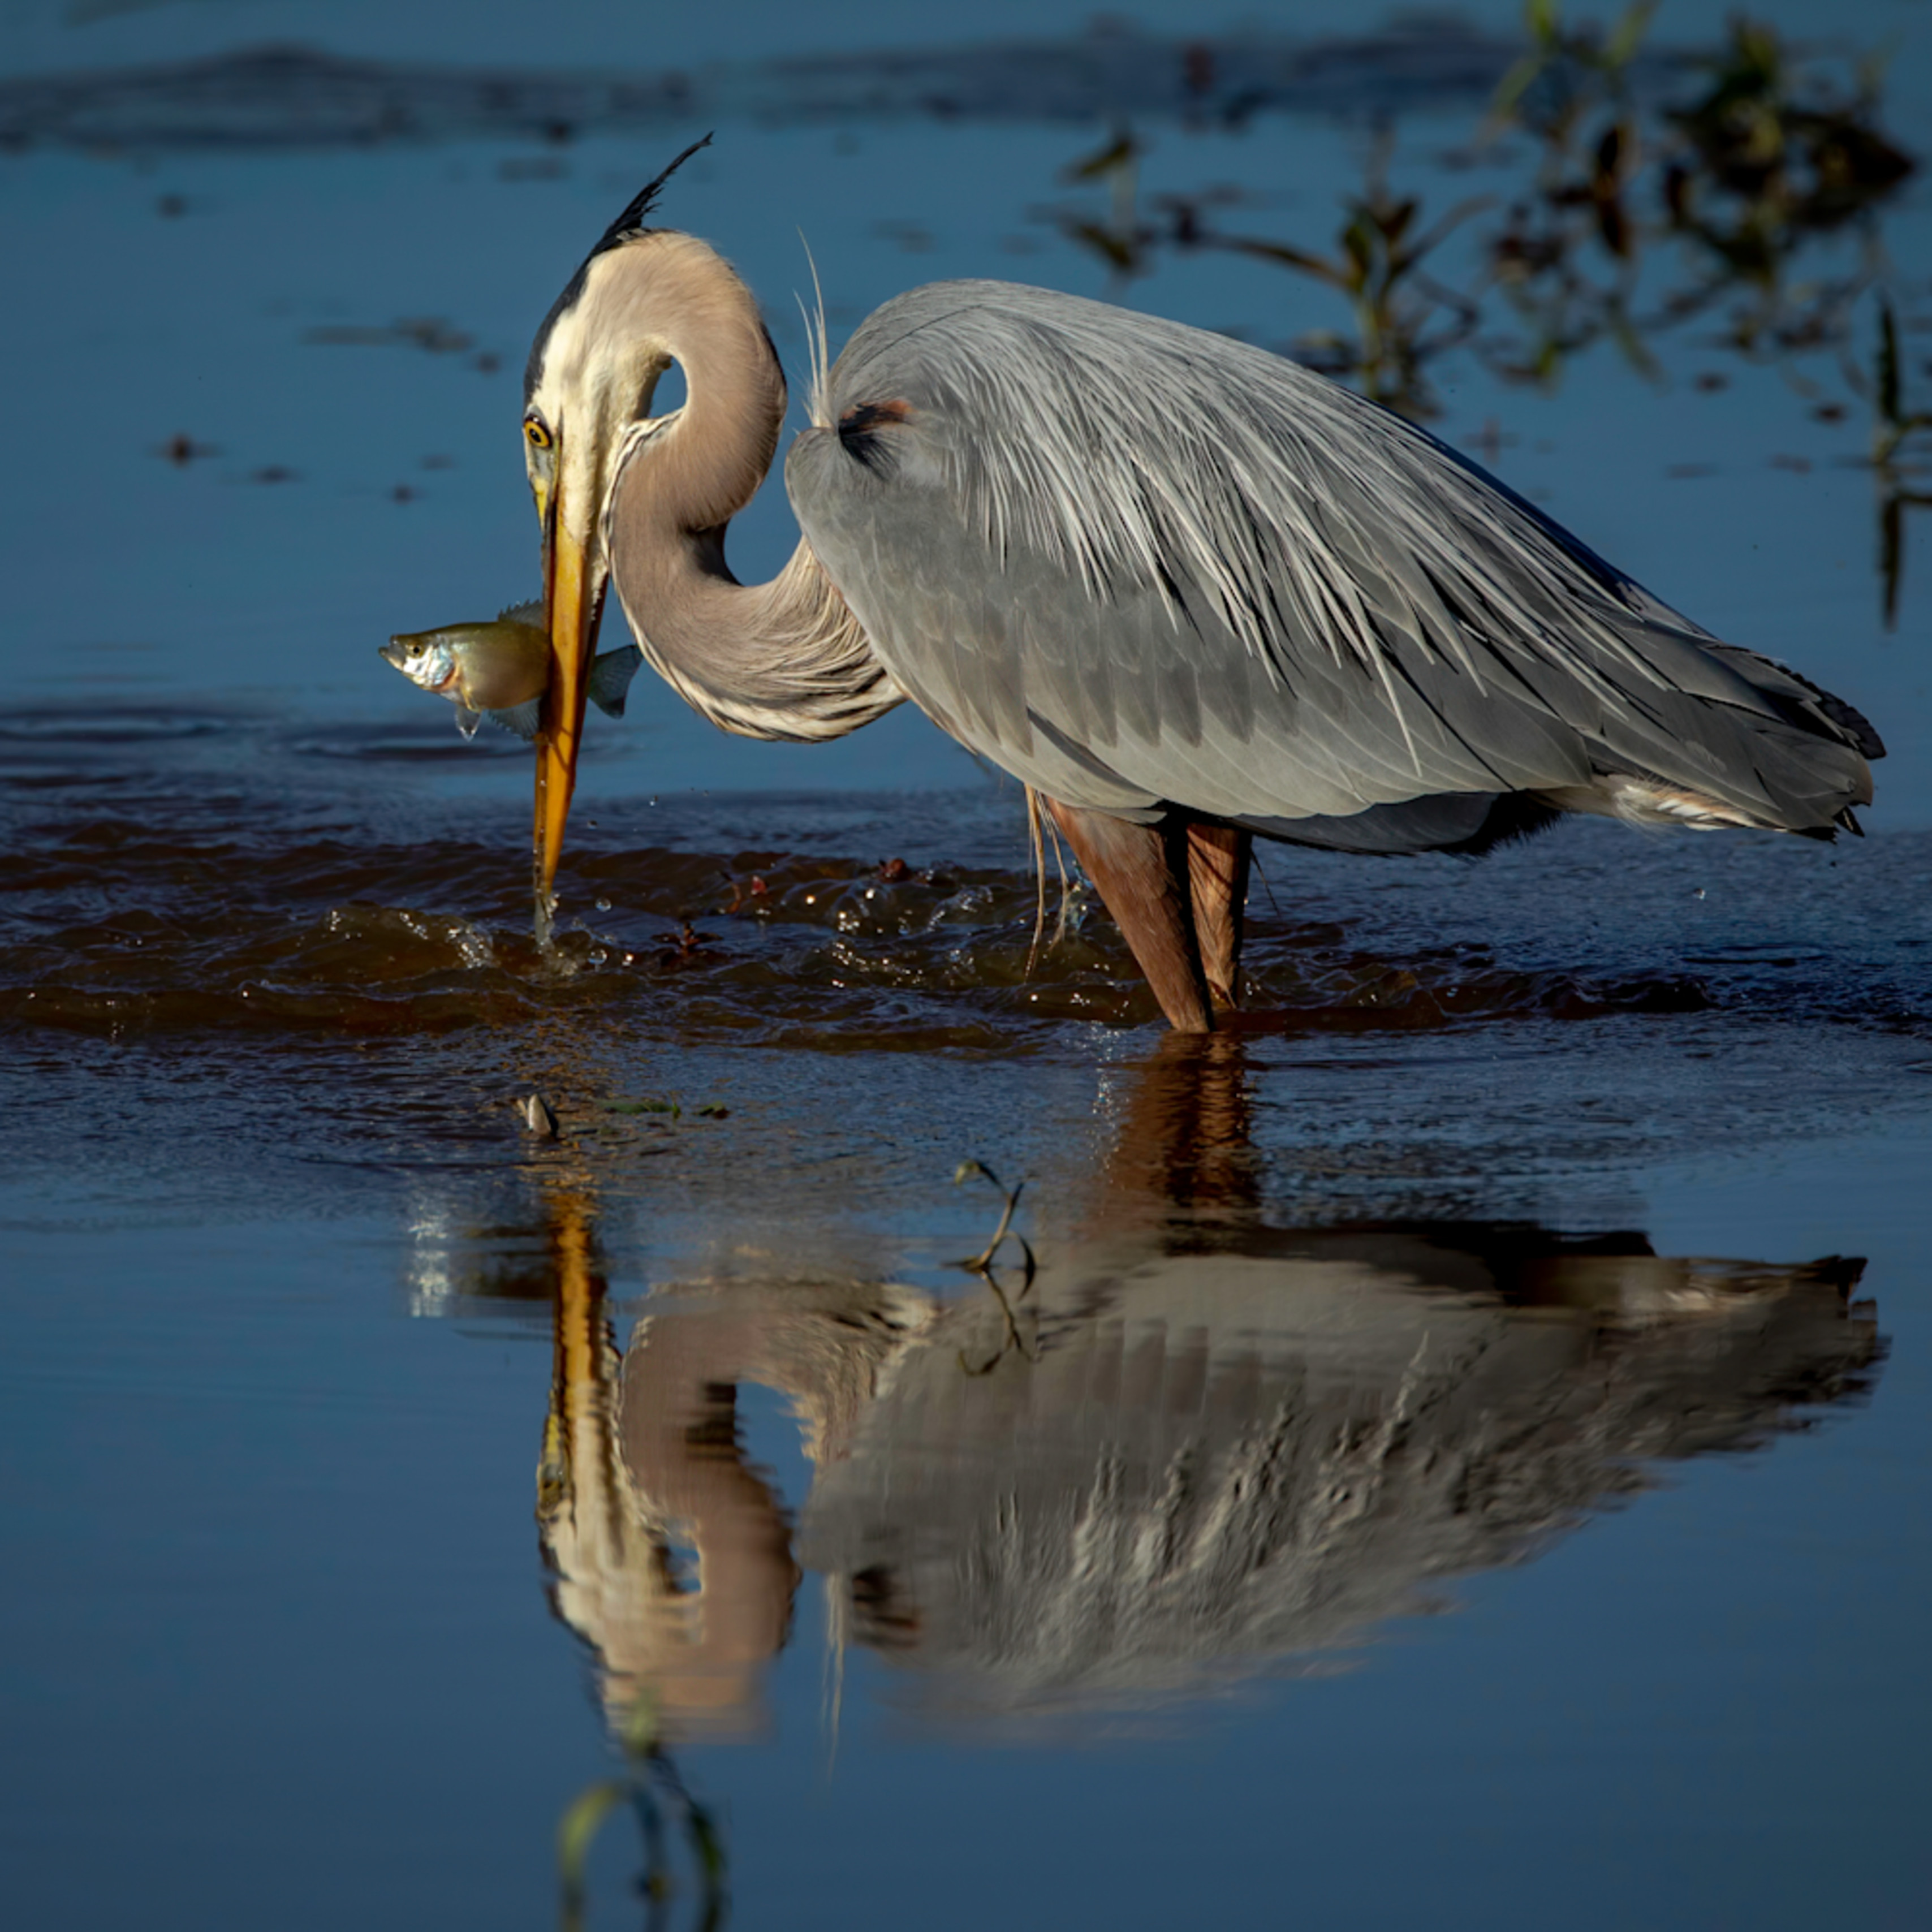 Great blue heron catches fish reflection ut727b